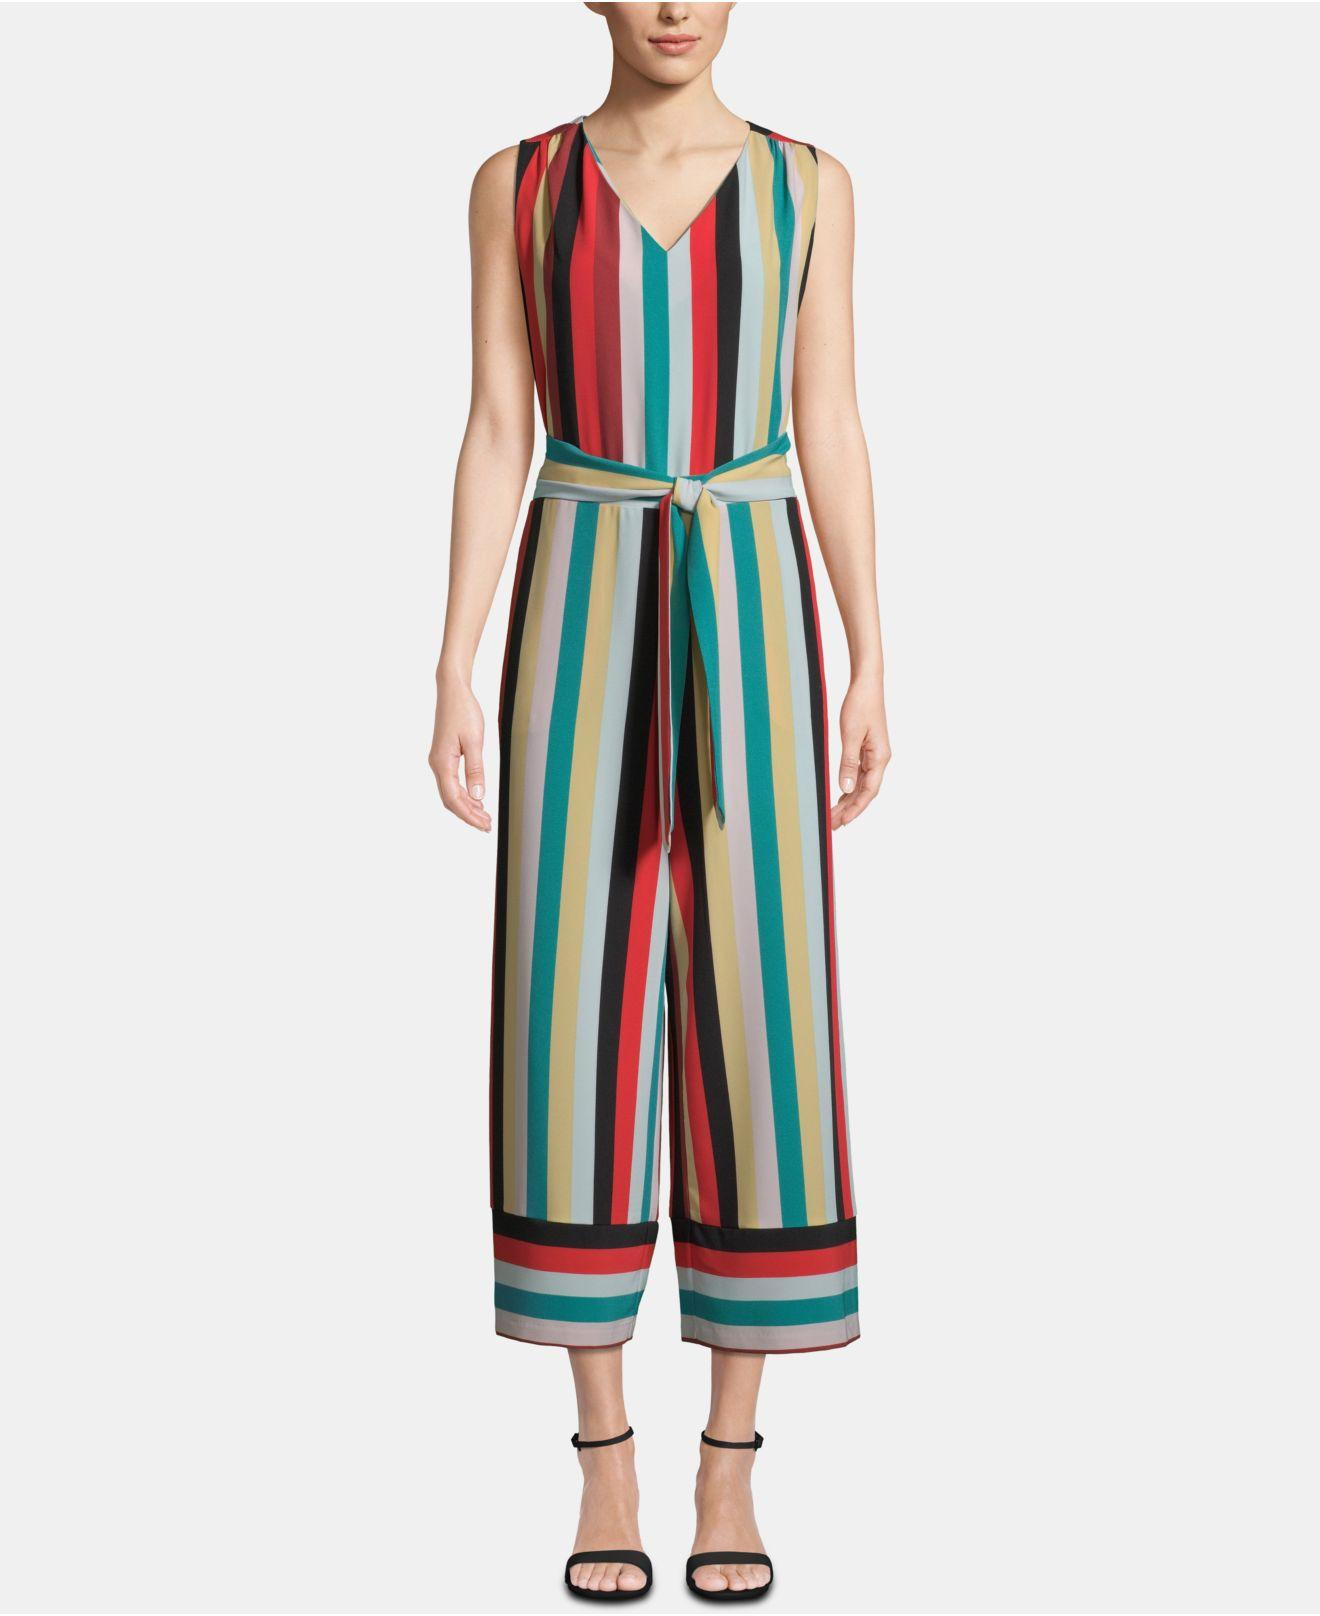 0a33ee8aae Eci. Women s Striped V-neck Sleeveless Cropped Jumpsuit